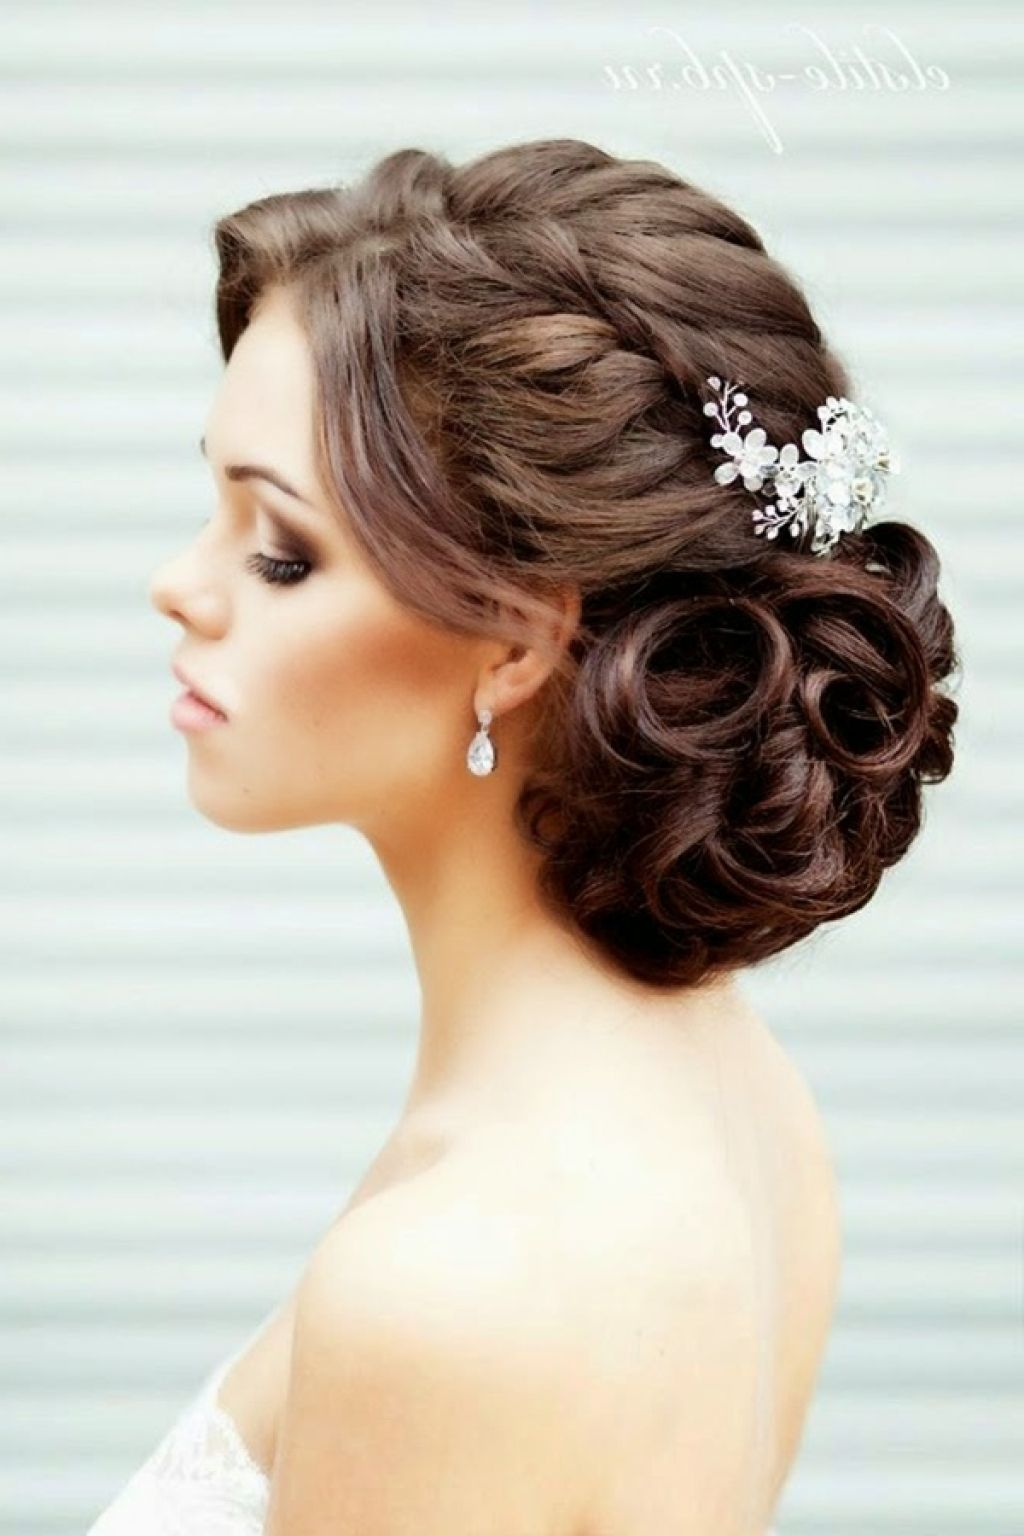 Wedding Hairstyles For Long Hair 3 Easy Updo Hairstyles For Long Hair Hairstyle Tips Bridesmaid